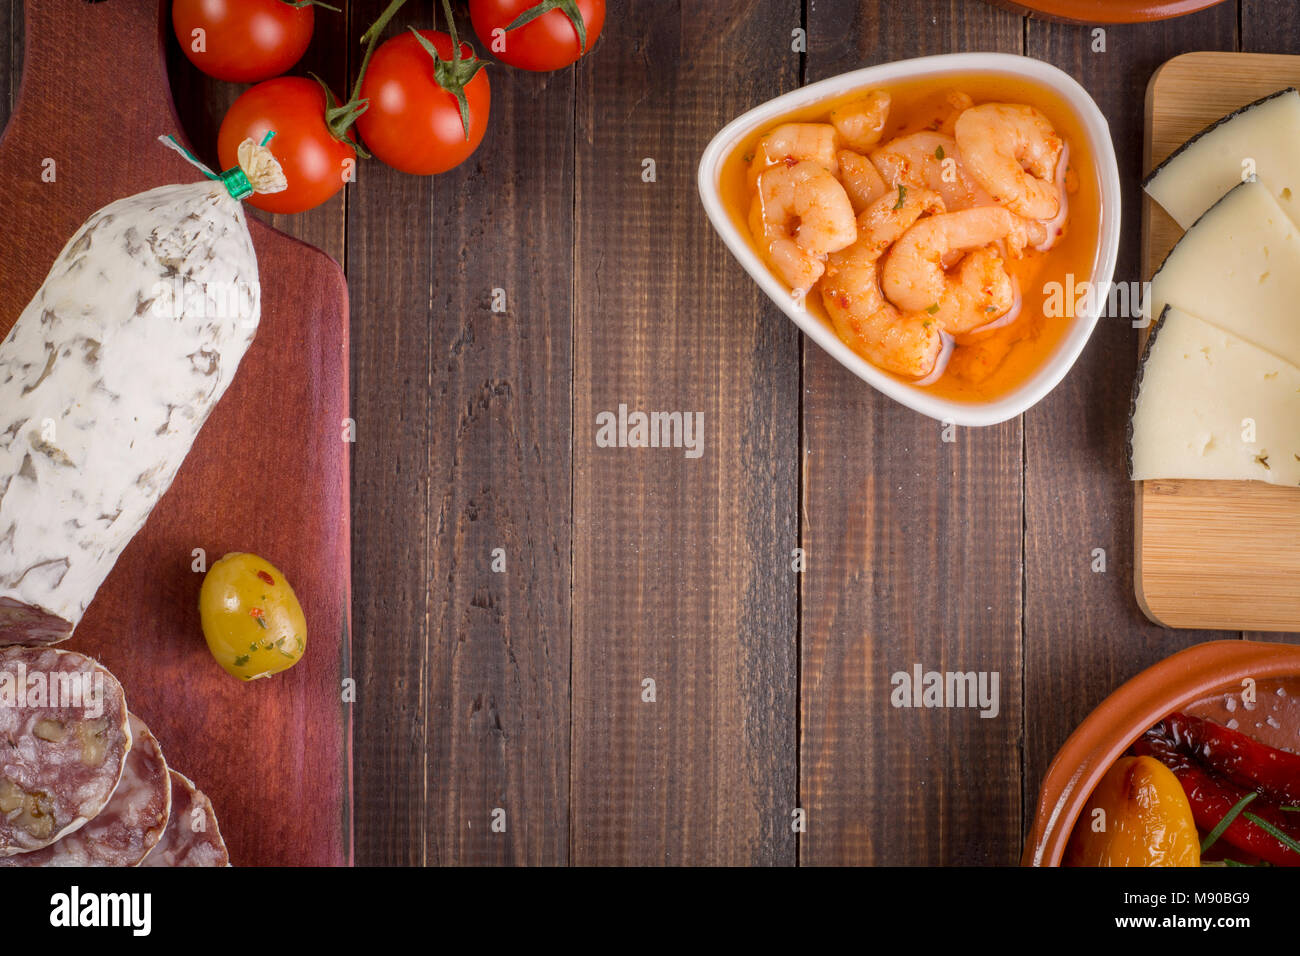 Mixed tapas food starters on table. Salami with walnuts, shrimps and manchego cheese. Top view. Copy space. - Stock Image